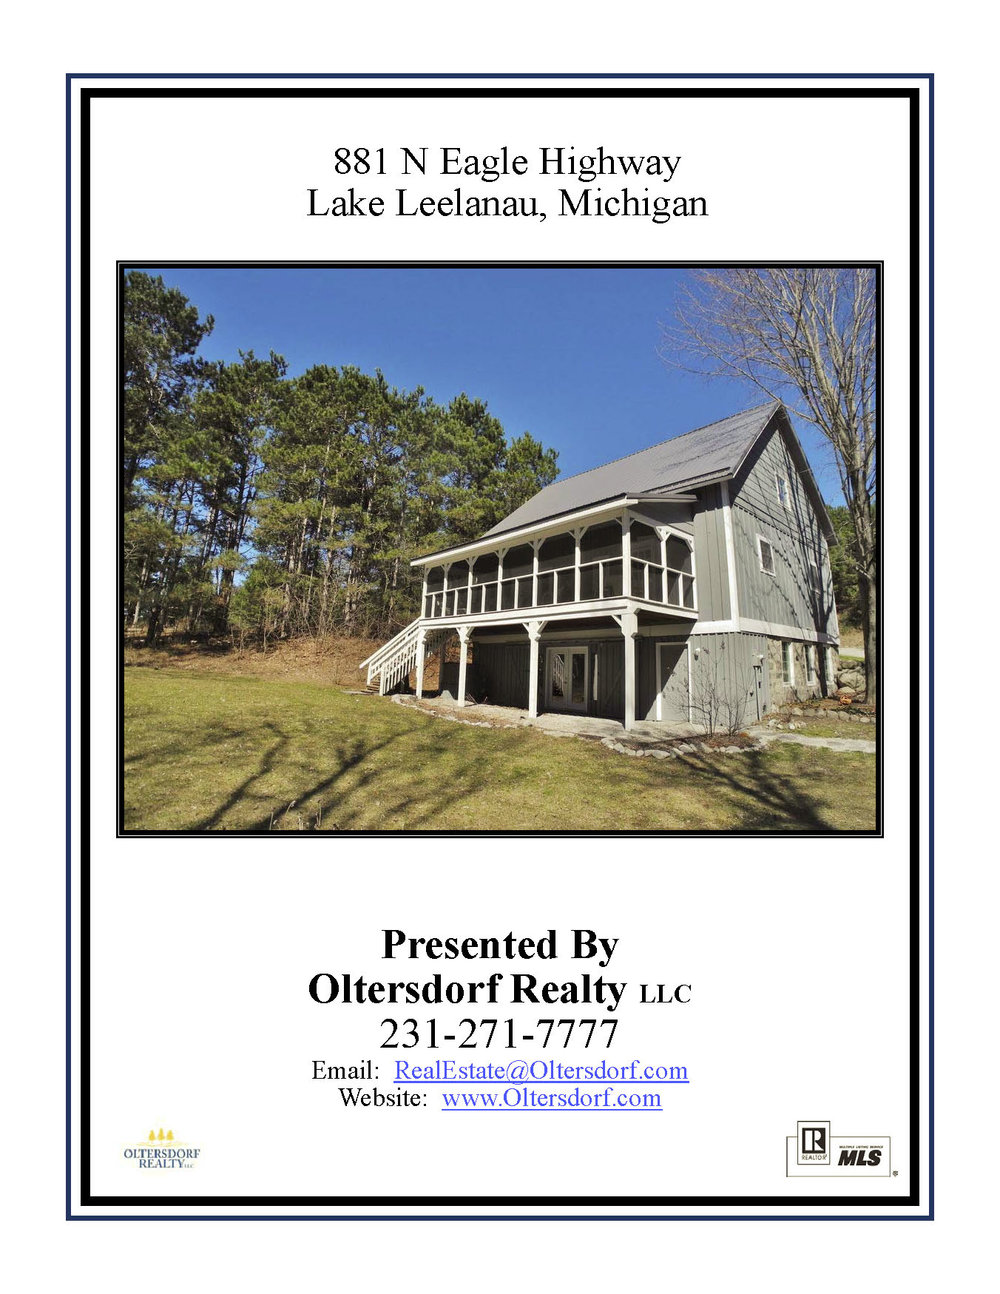 881 N Eagle Highway, Lake Leelanau, MI – Unique Post & Beam Home For Sale By Oltersdorf Realty LLC - Marketing Packet (1).jpg